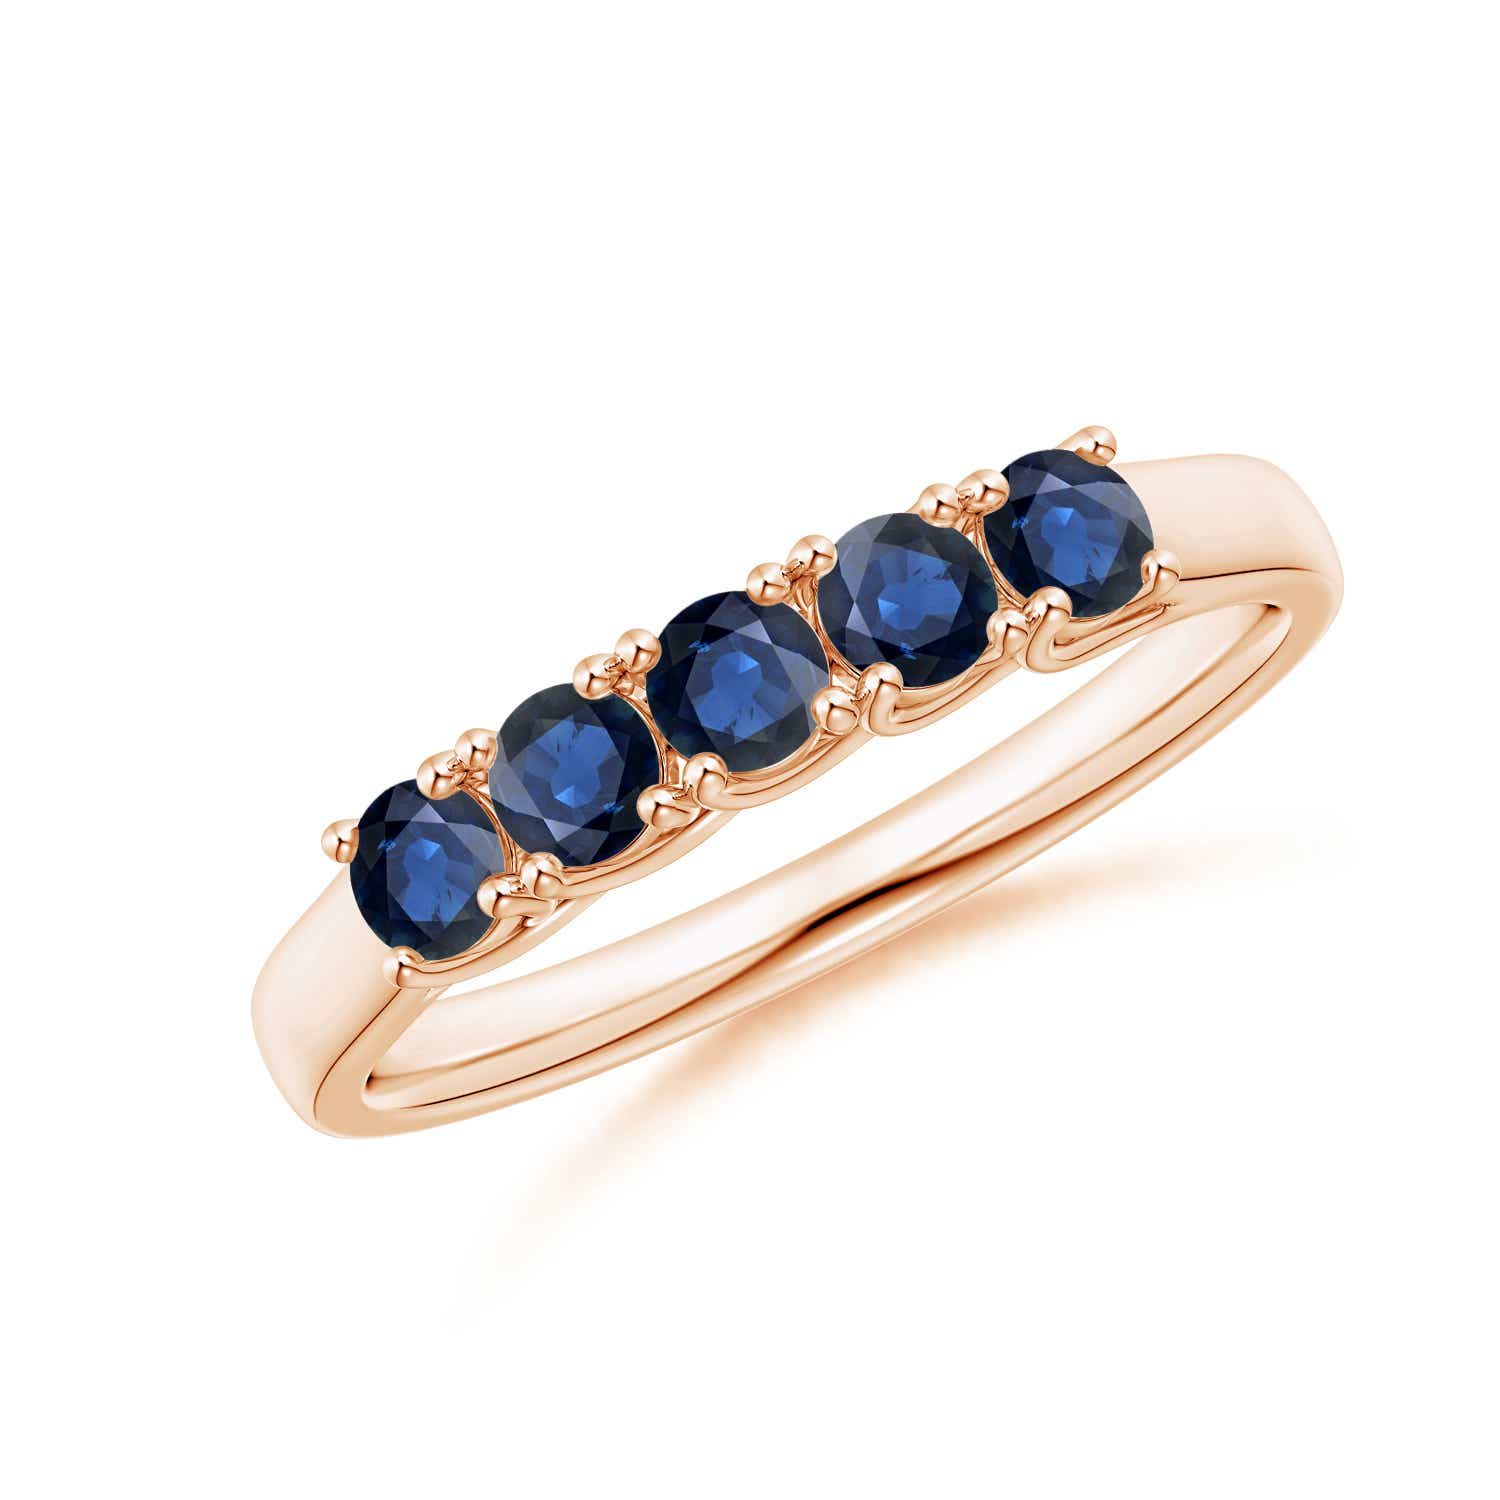 Half-Eternity-Five-Stone-Natural-Blue-Sapphire-Wedding-Band-Silver-Gold-Platinum